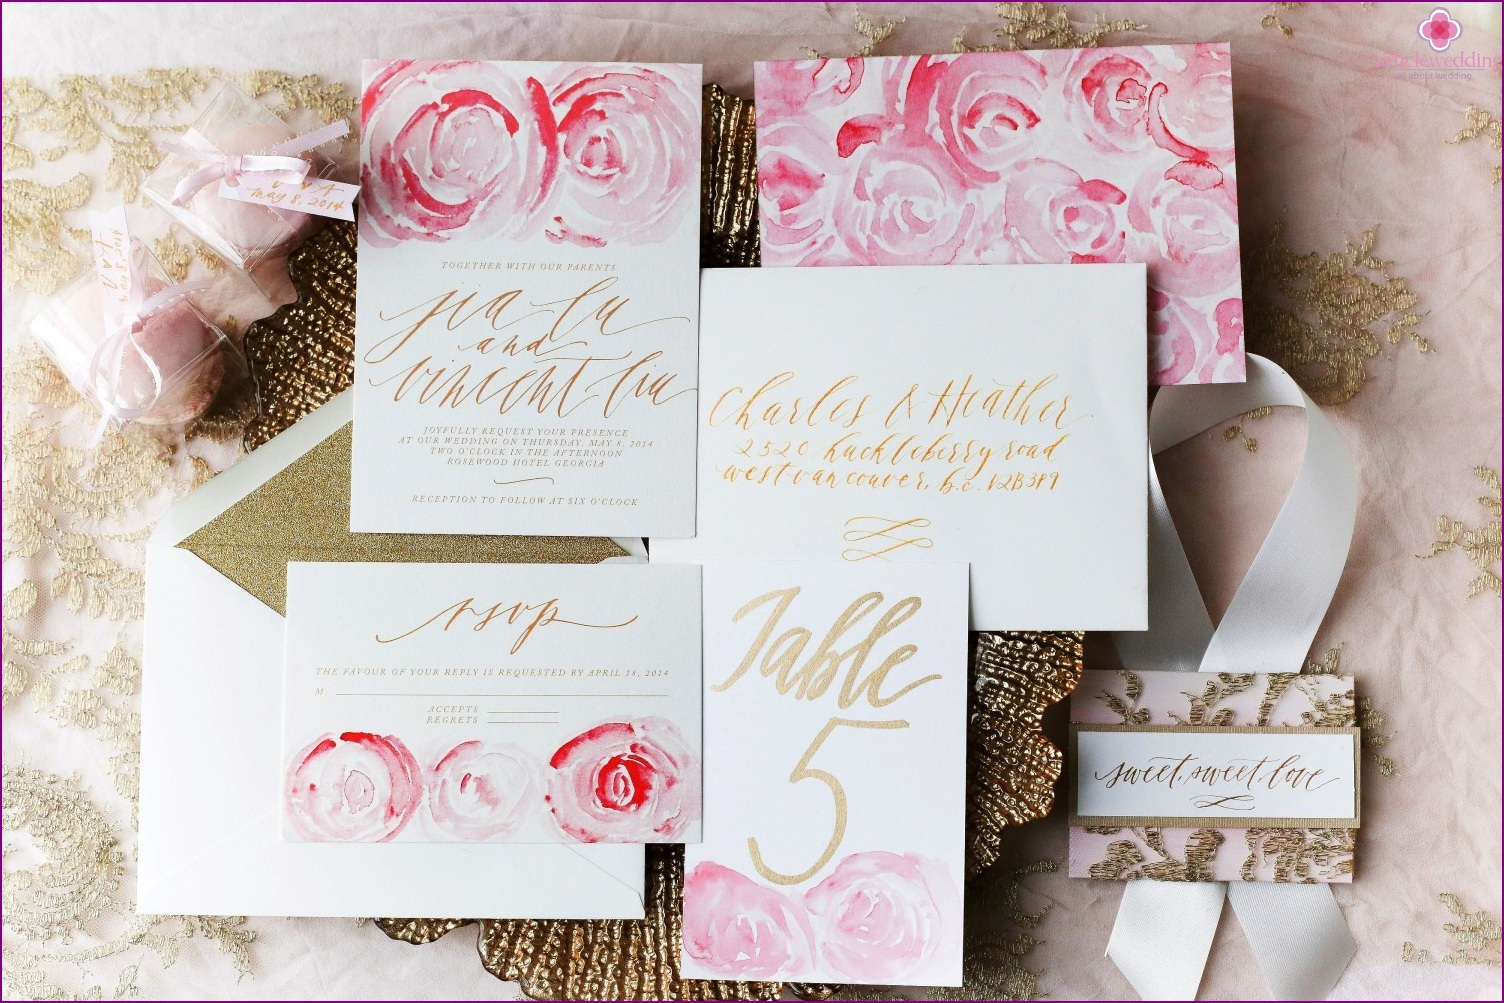 Watercolor accessories for the wedding